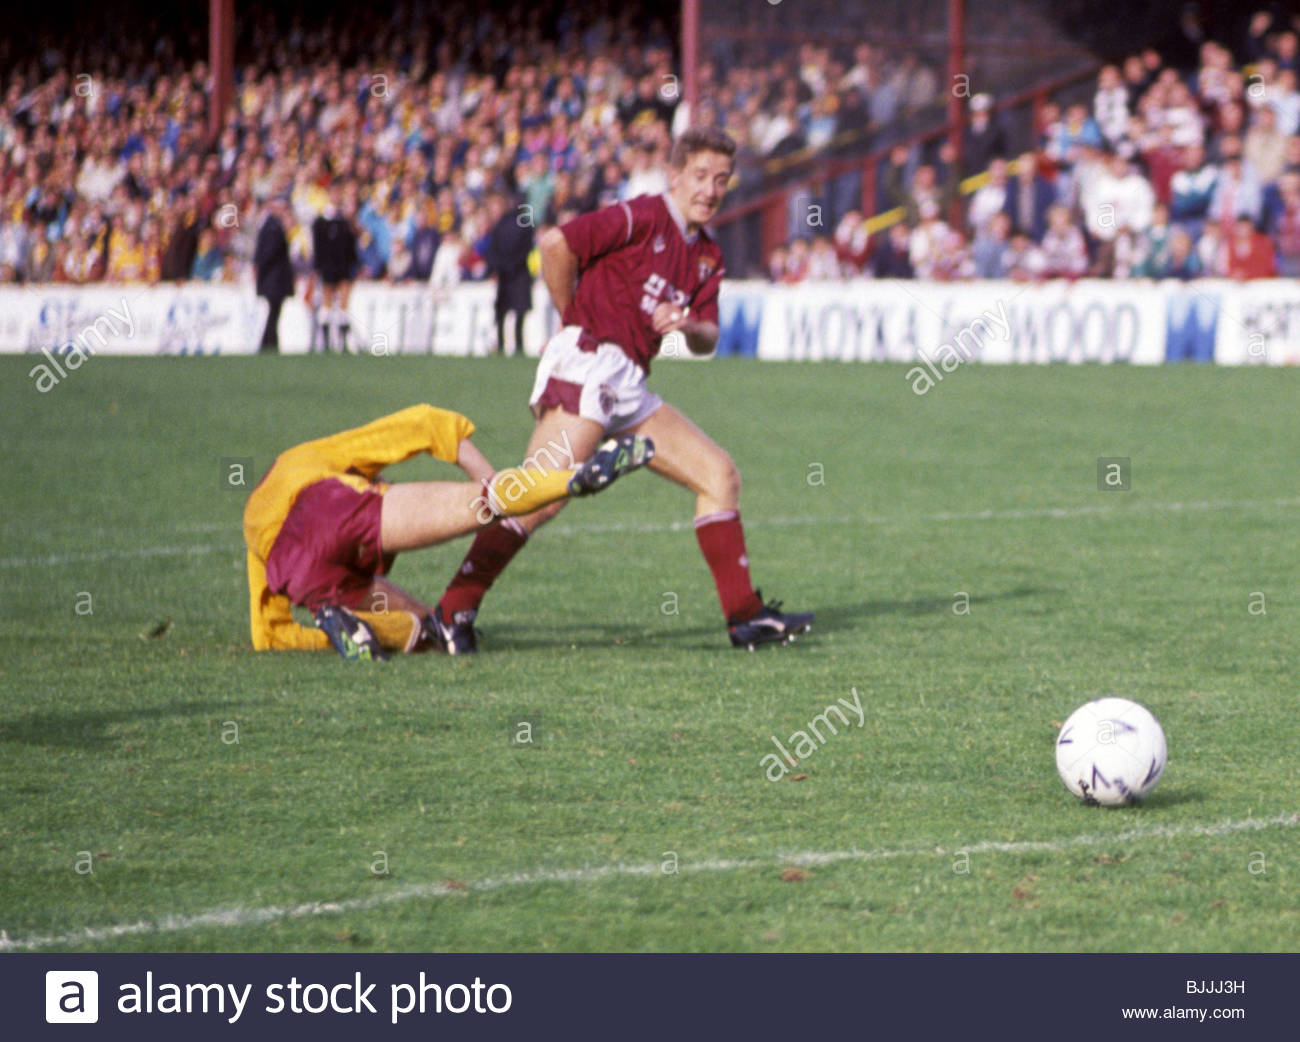 17/09/89 MOTHERWELL V HEARTS (1-3) FIR PARK - MOTHERWELL Tom Boyd (left) is powerless to stop John Robertson knocking - Stock Image